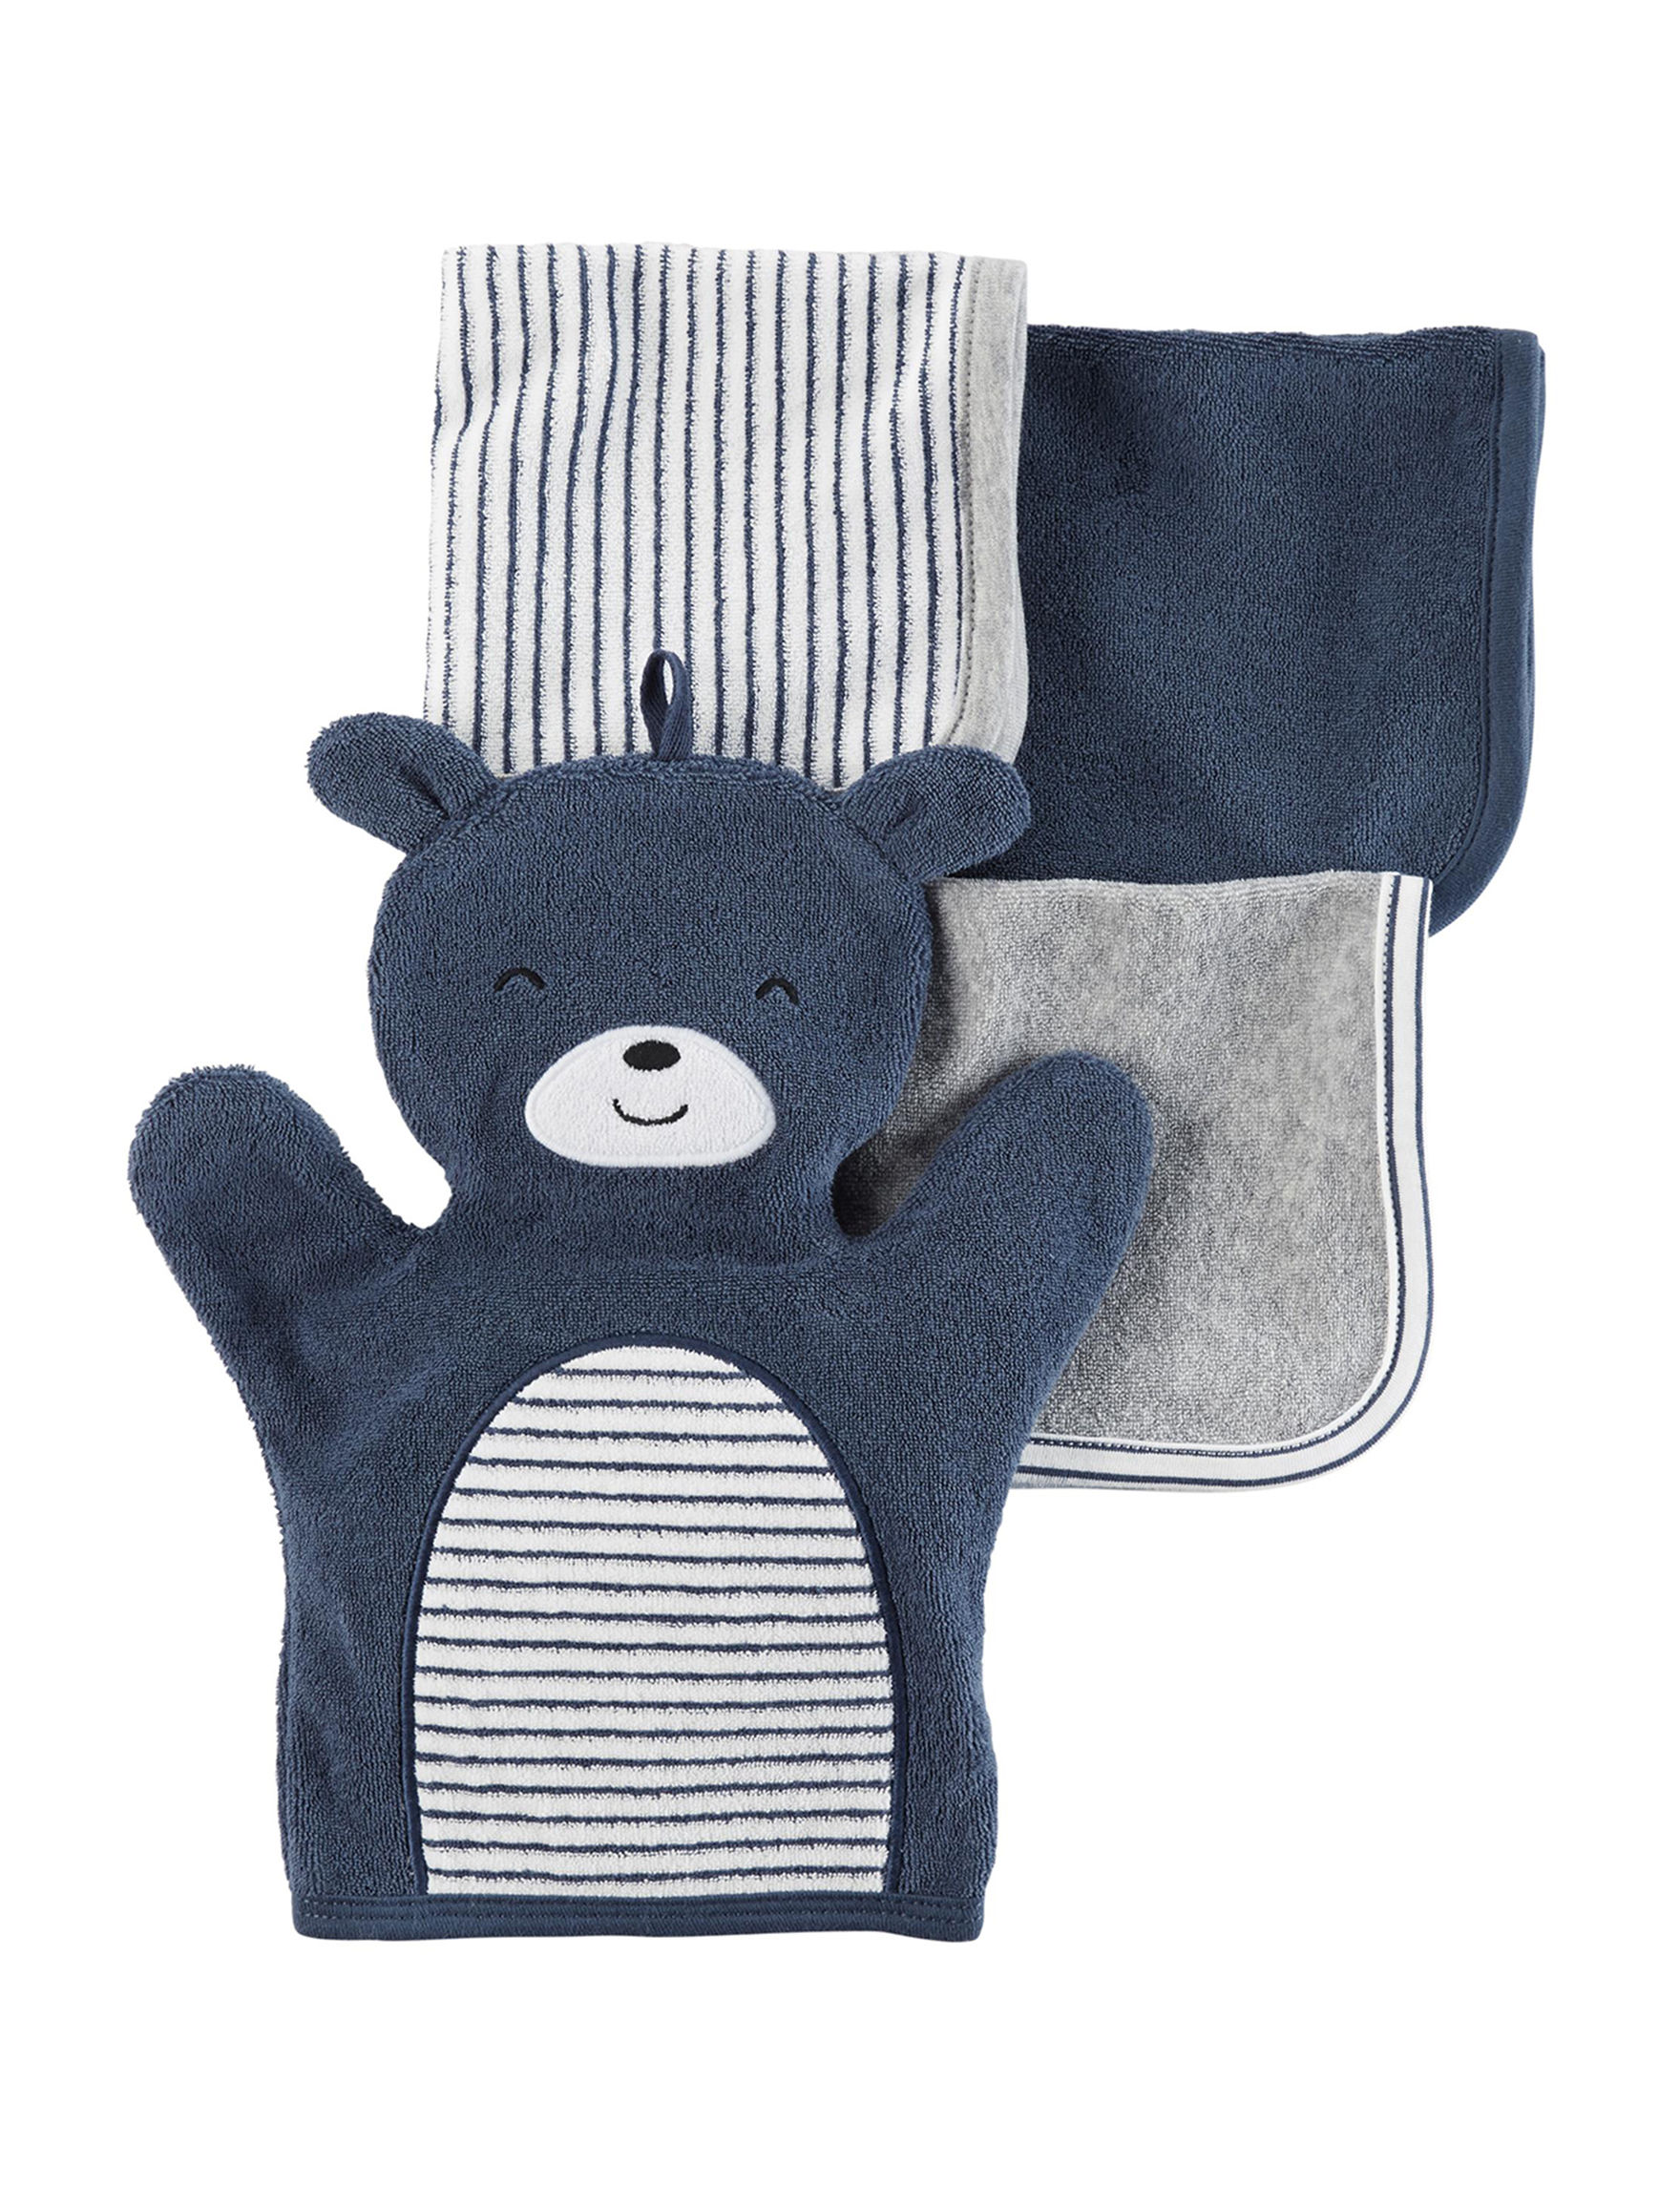 Carter's Blue Washcloths